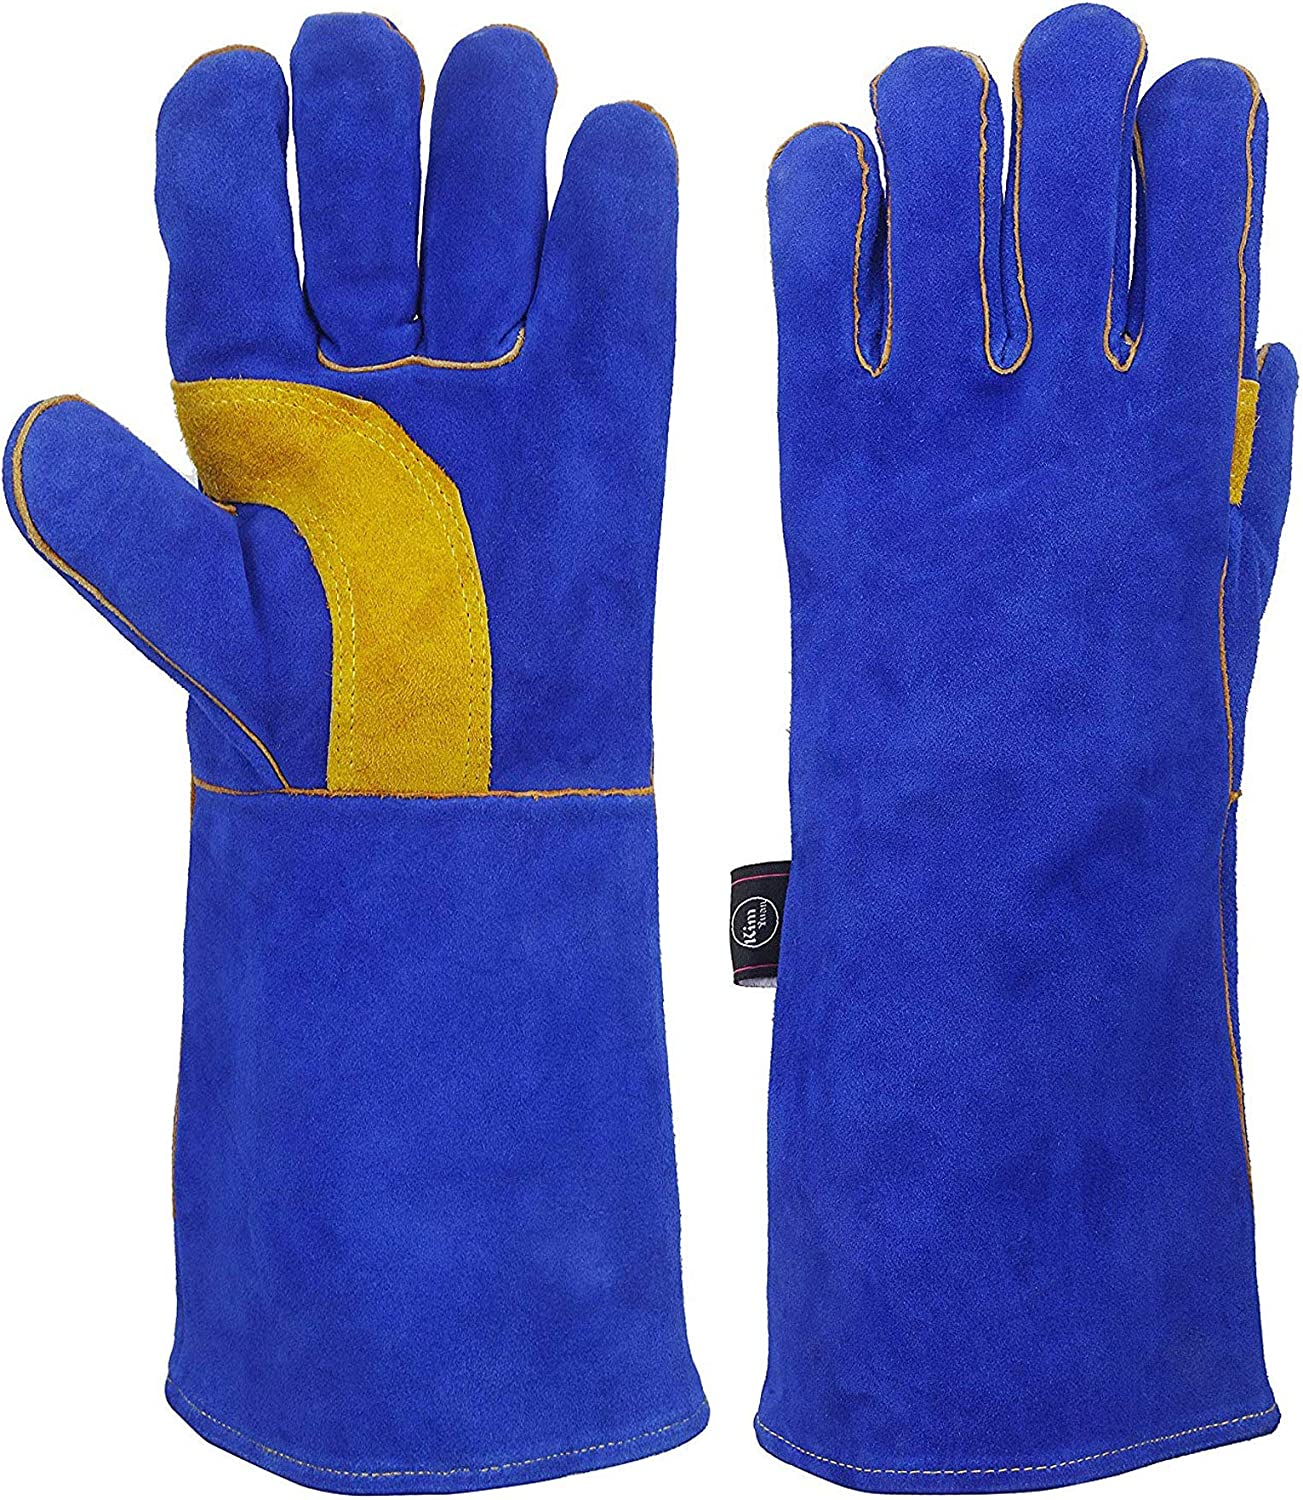 KIM YUAN Extreme Heat Fire with Kevlar Translated Leather depot Gloves Resistant